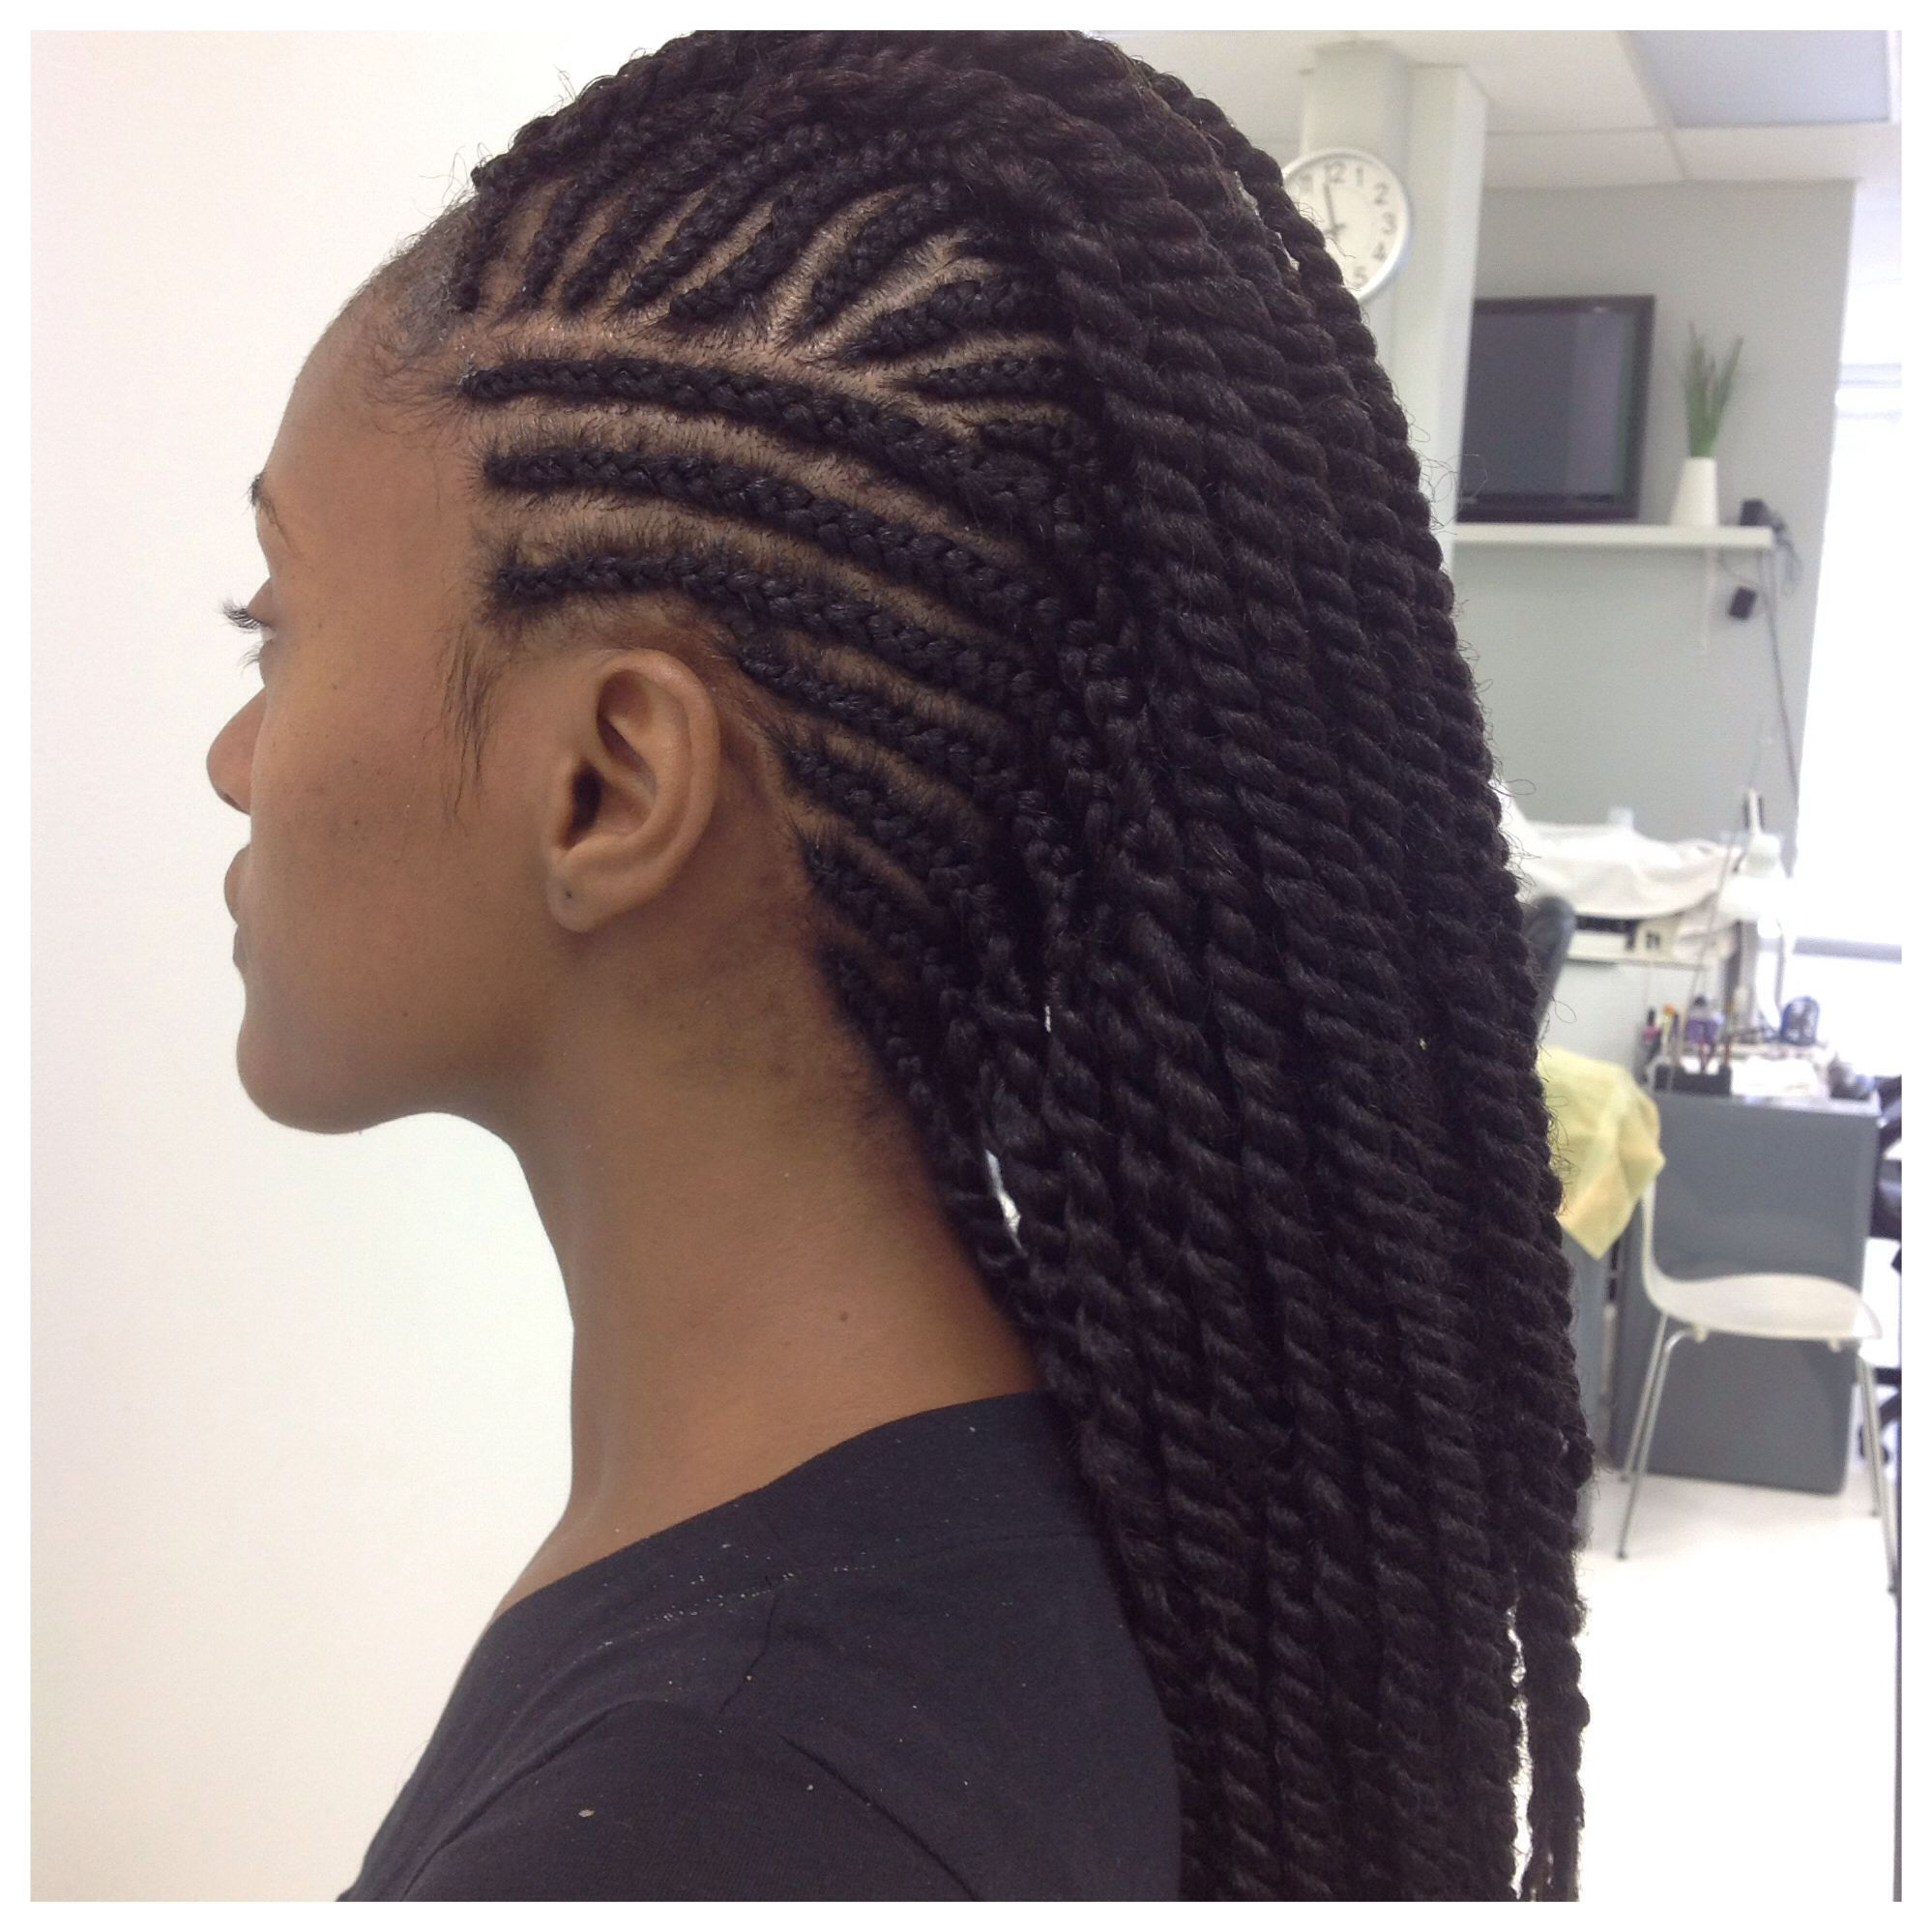 Cornrows With Twists At The End Hair Beauty Natural Hair Styles Braided Hairstyles